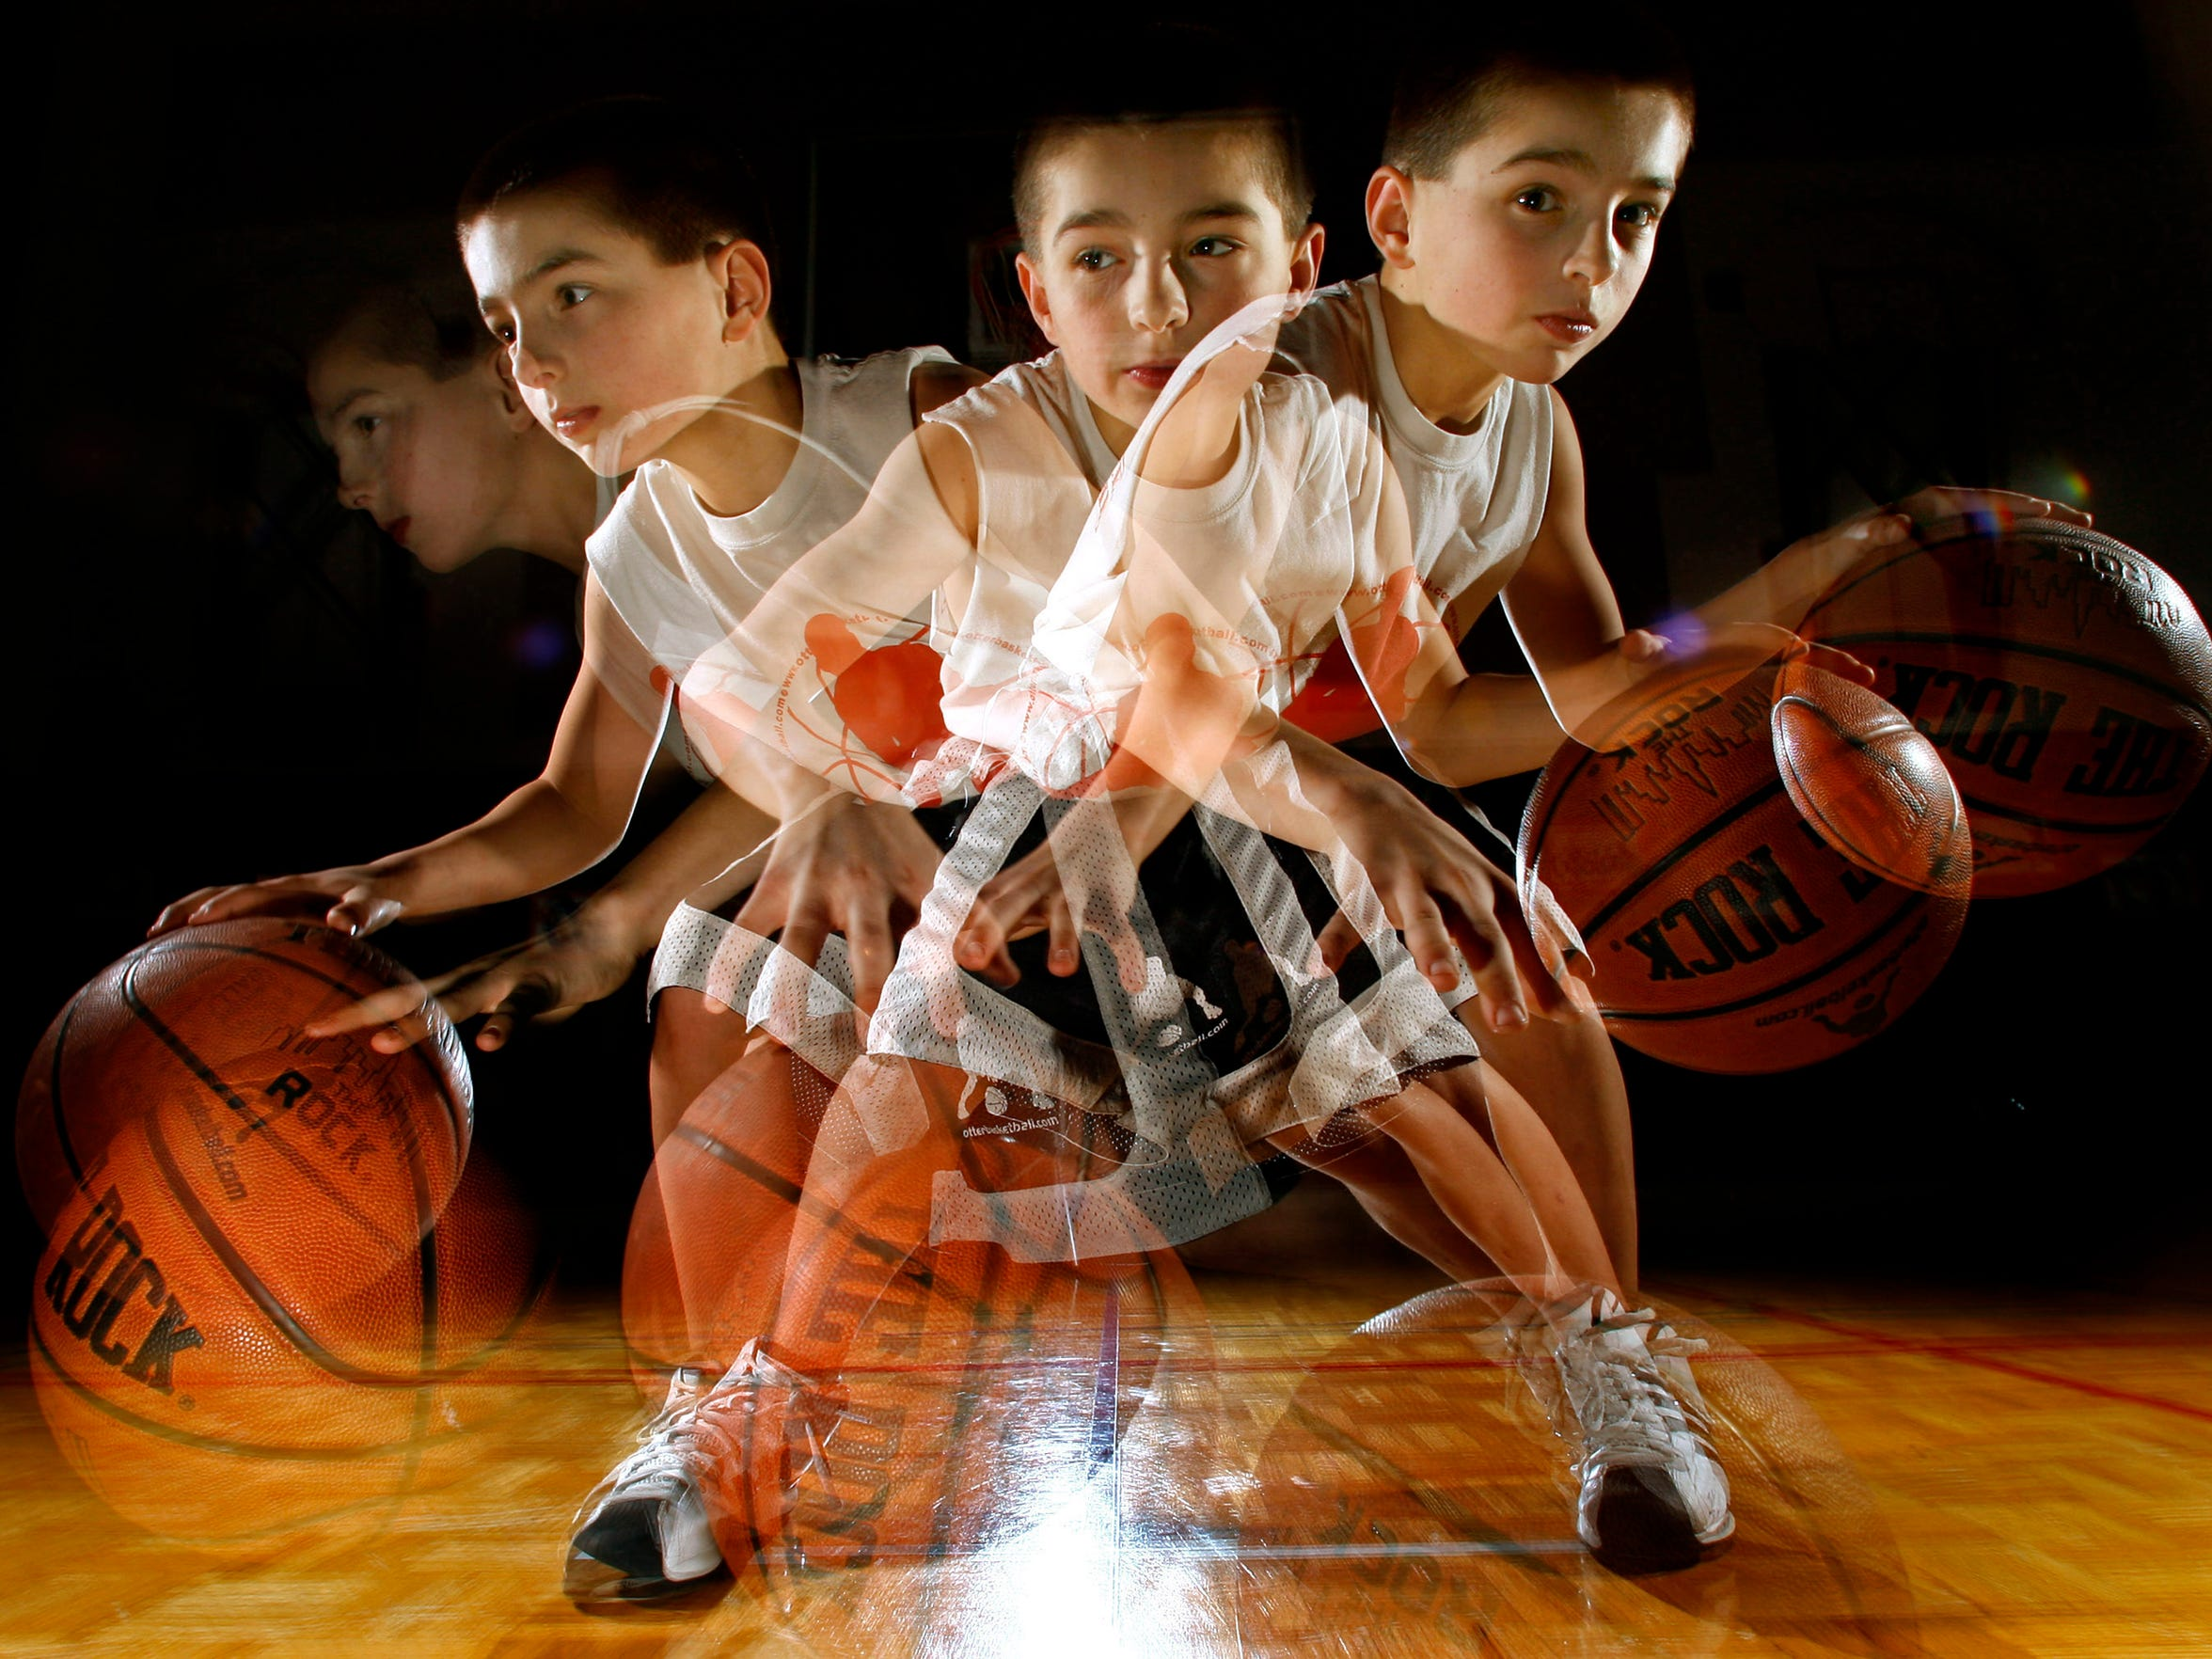 Jordan McCabe at 10 years old. The Kaukauna standout